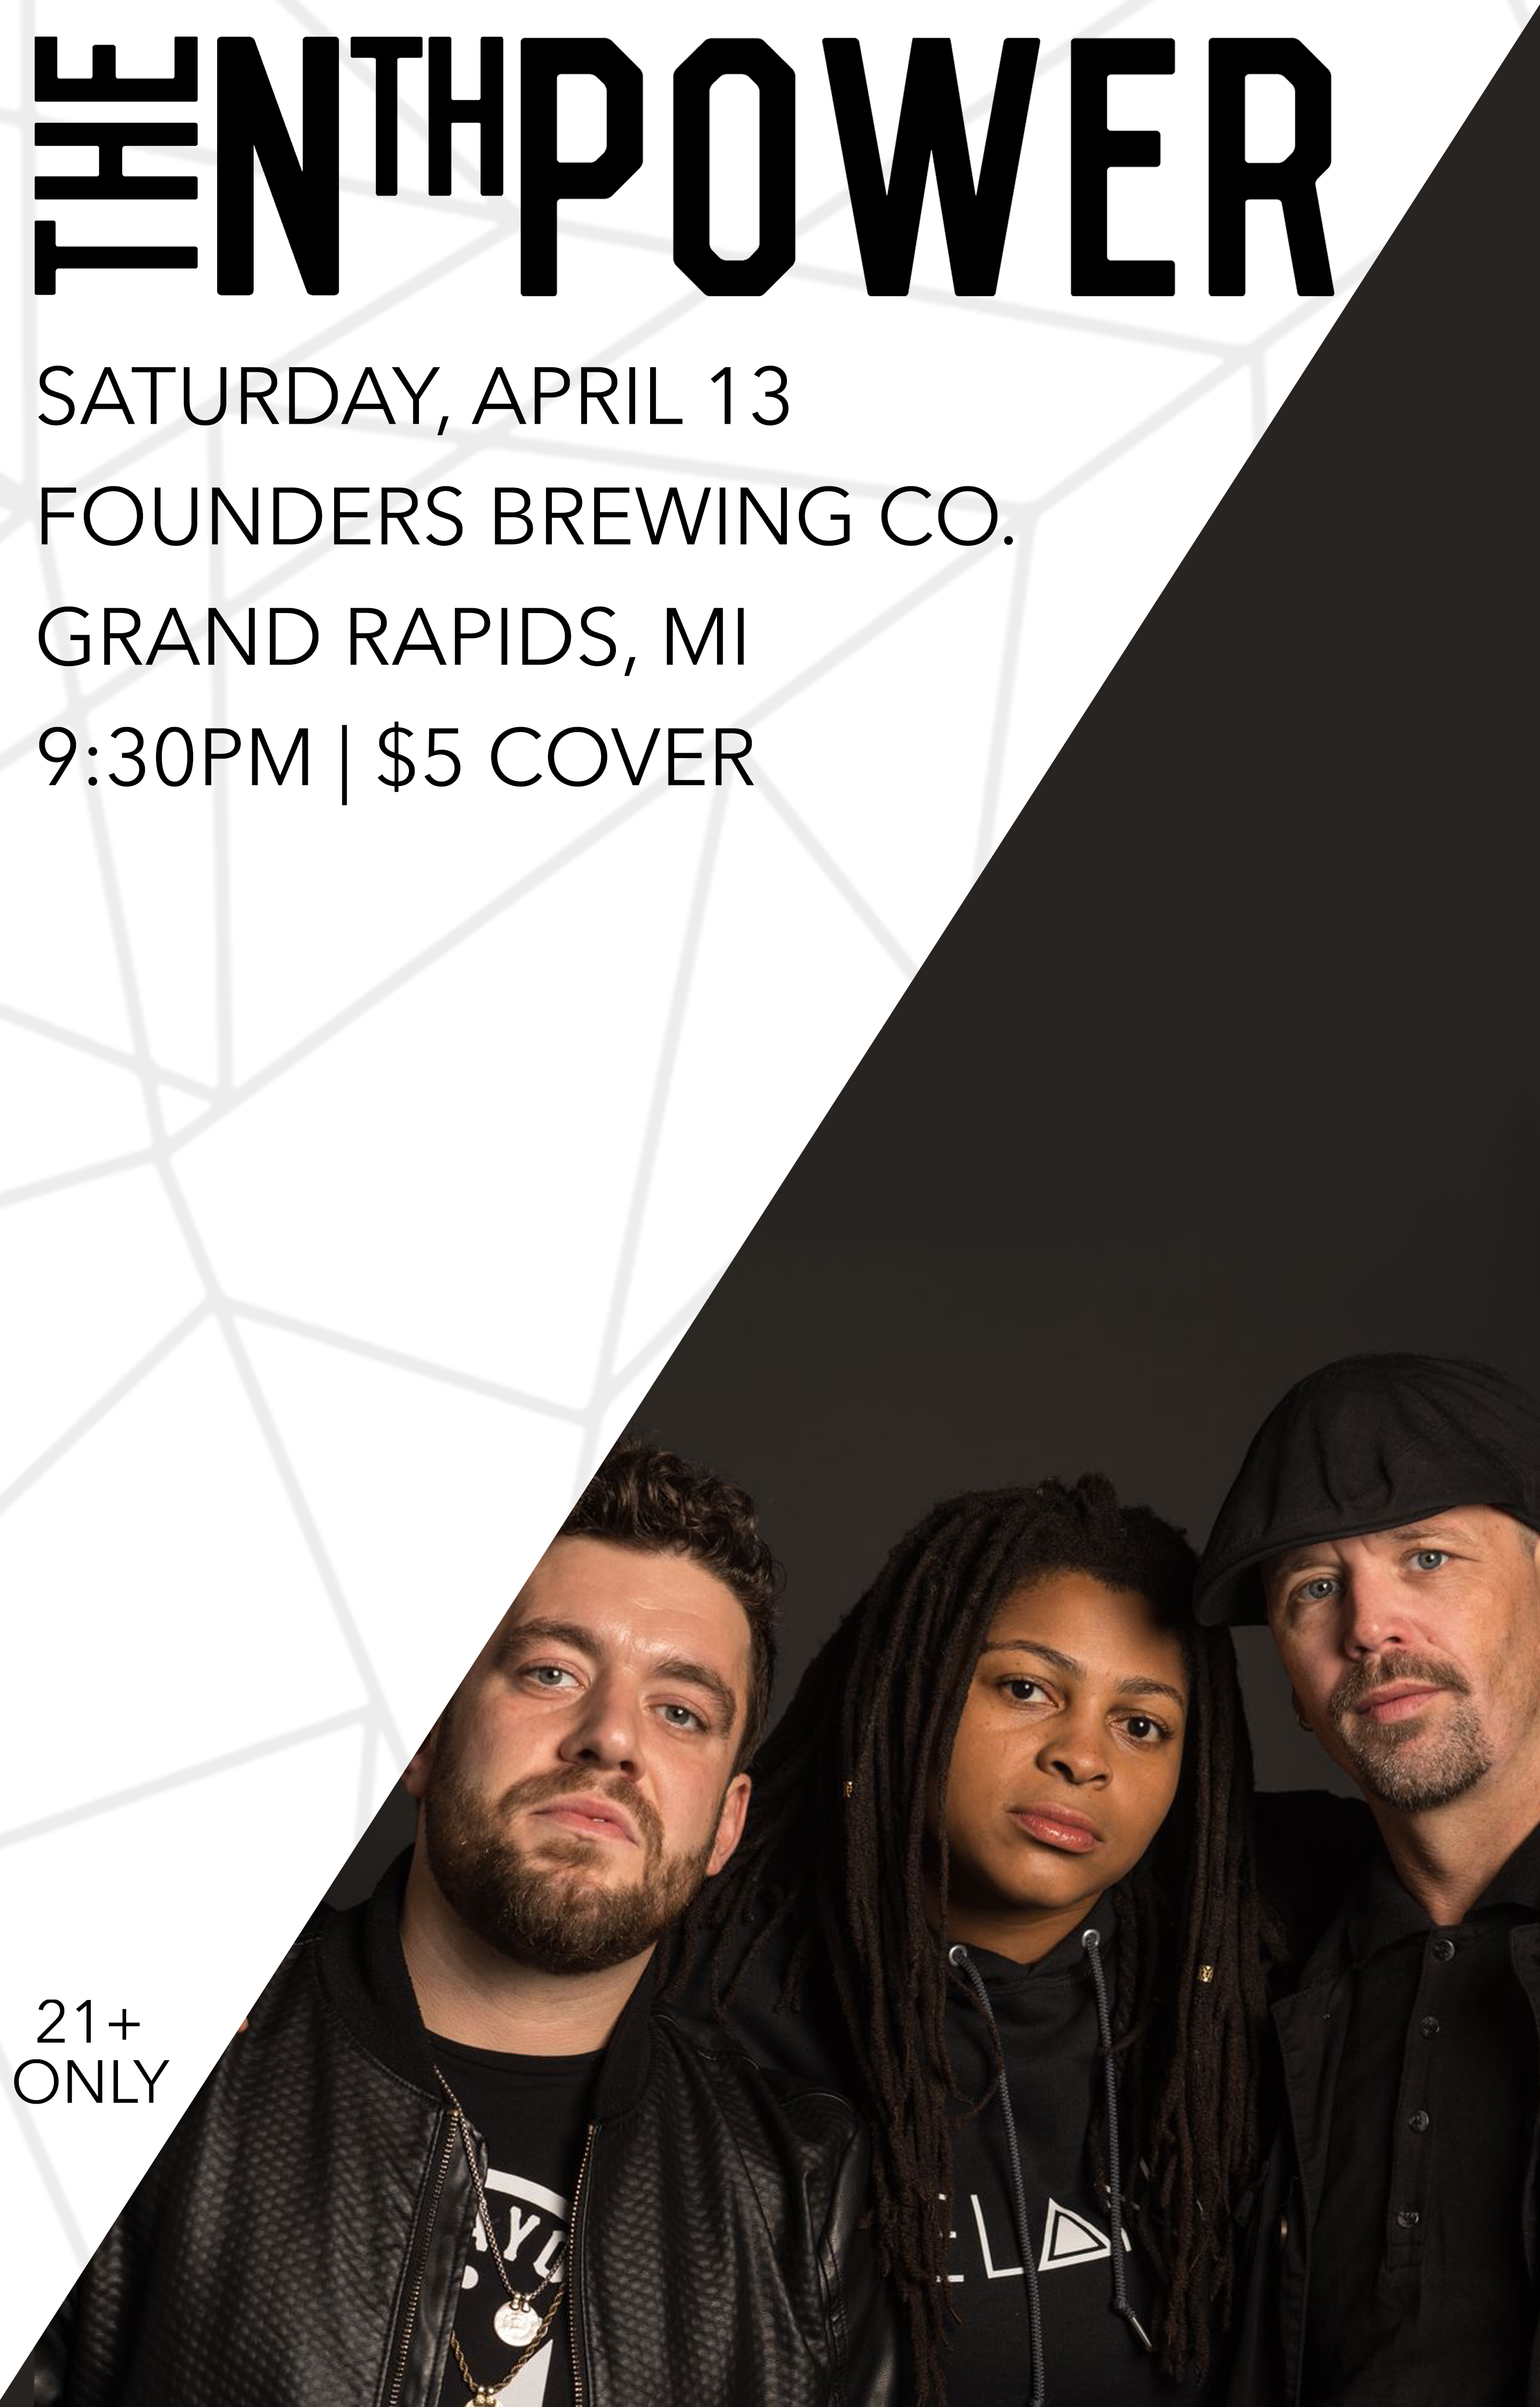 The Nth Power event poster hosted by Founders Brewing Co.